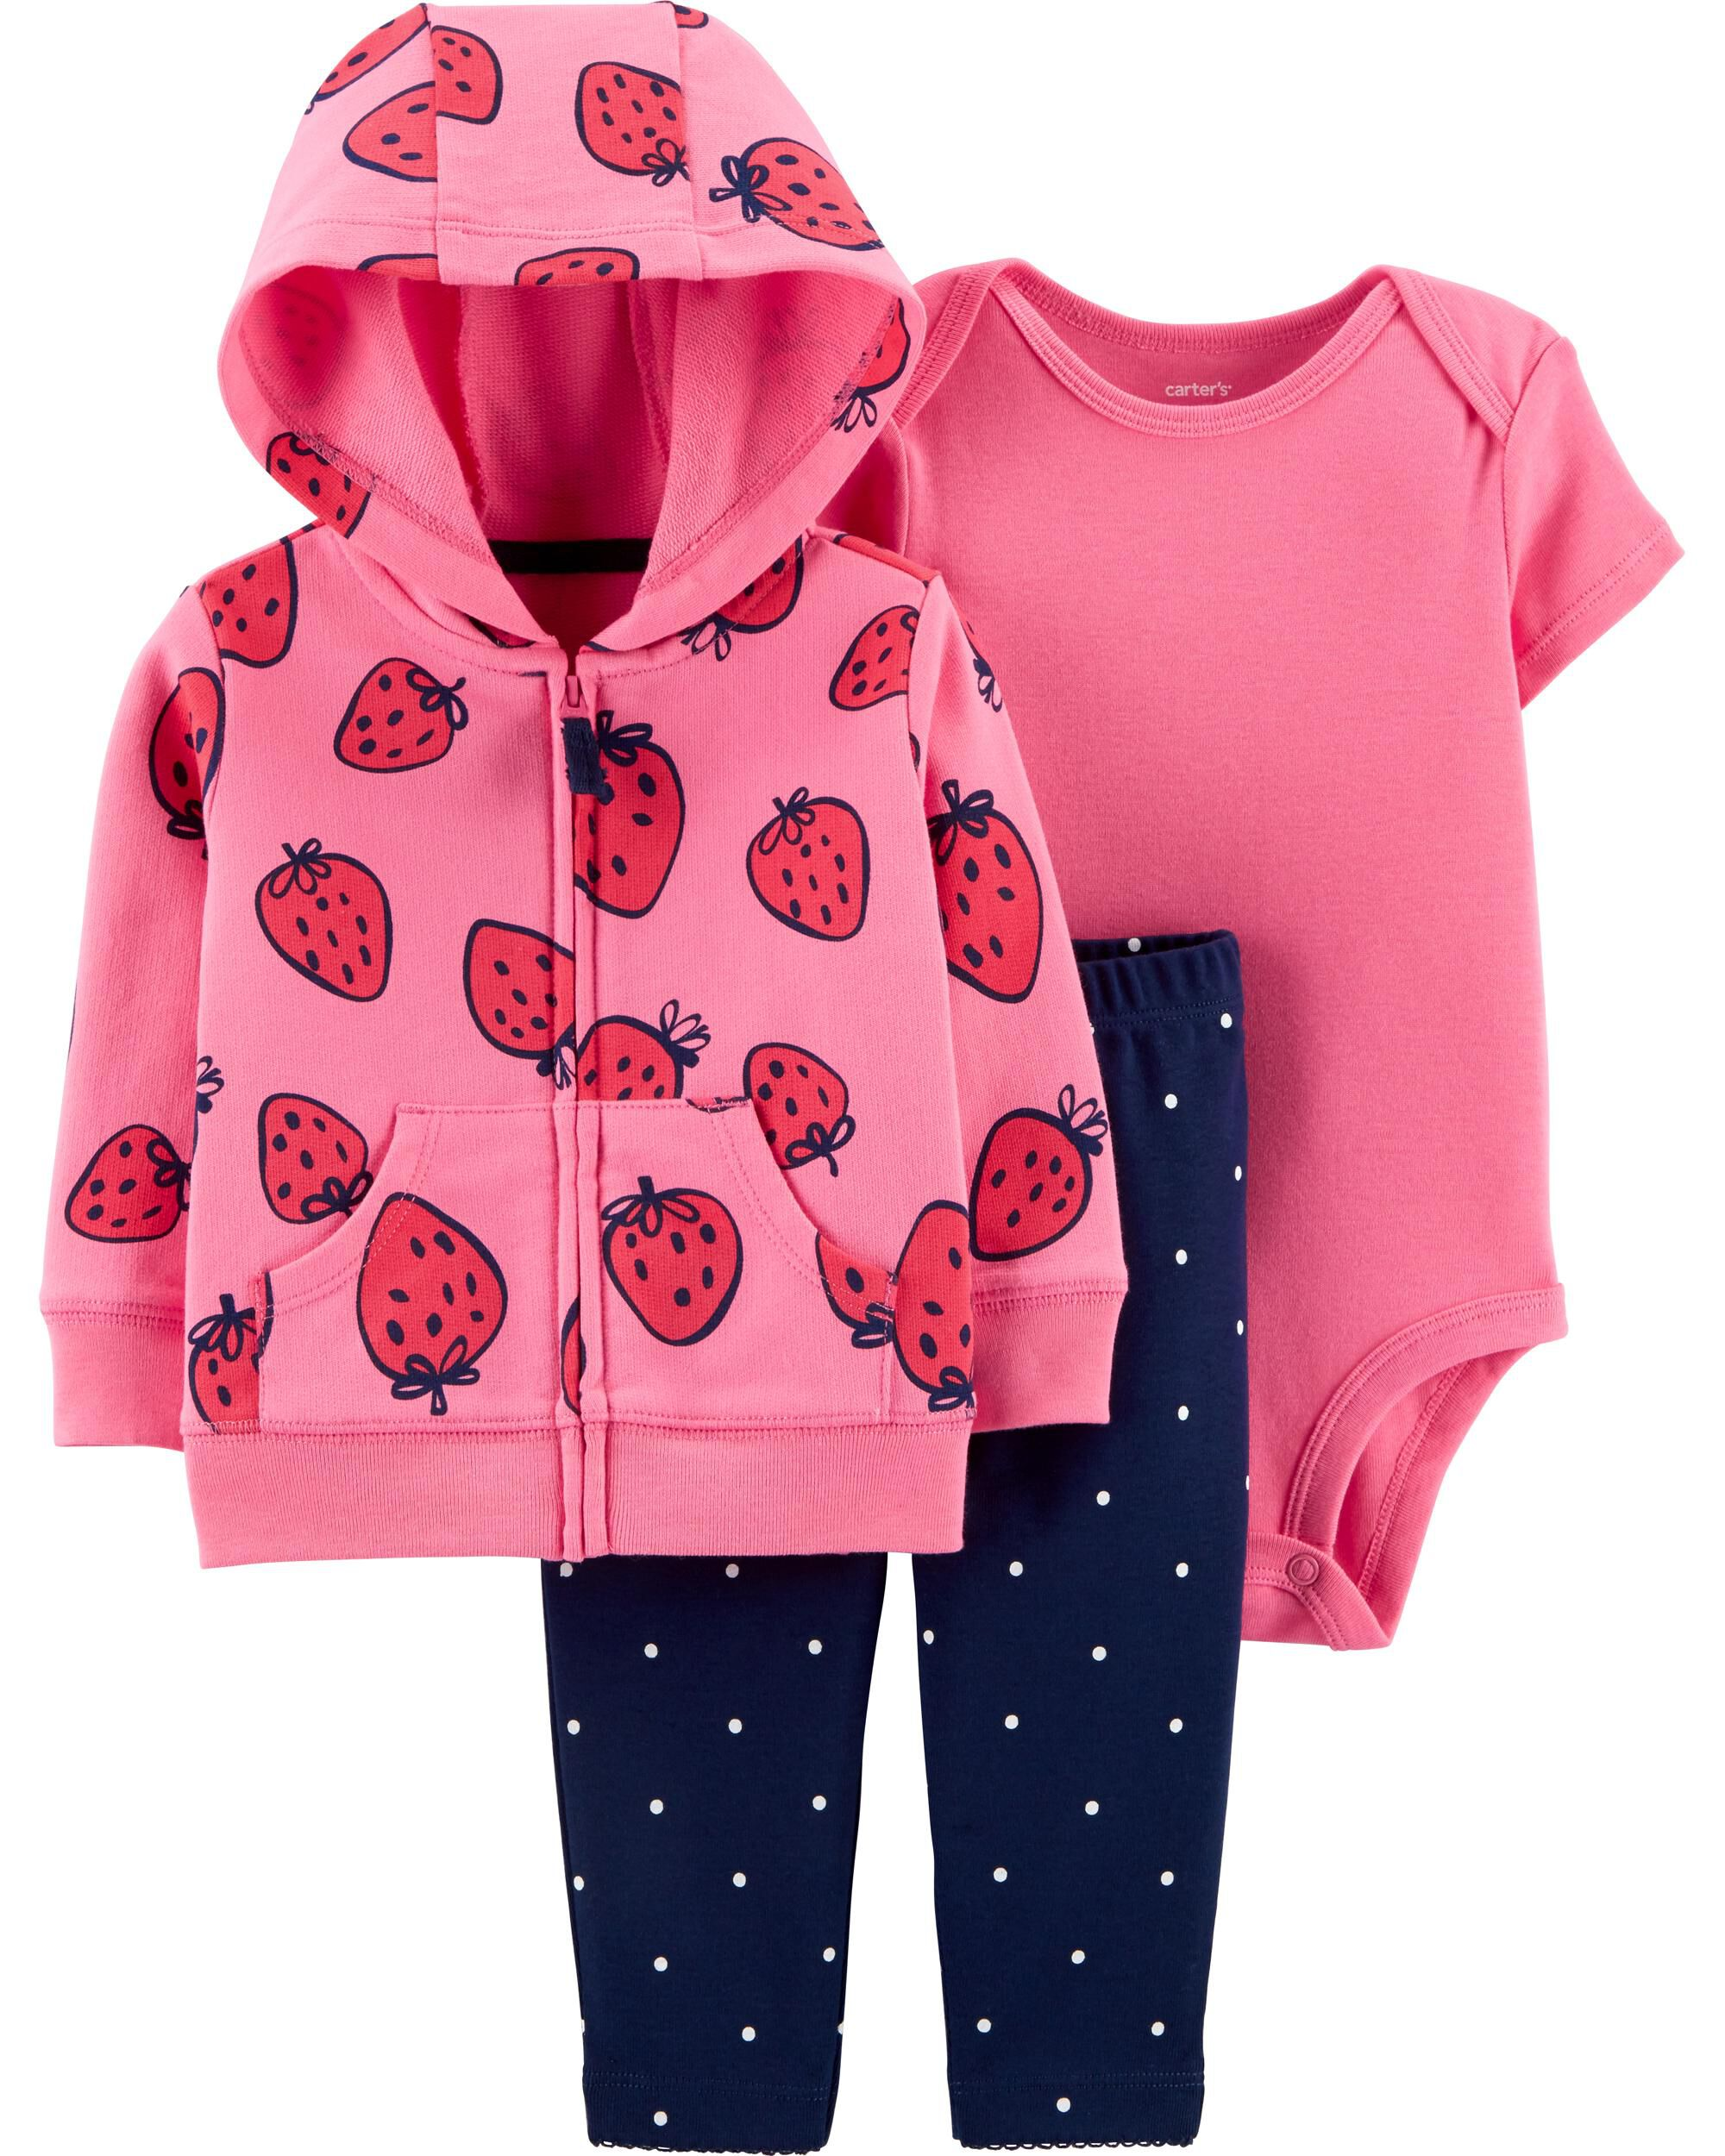 Girls' Clothing (newborn-5t) New Carters Toddler Girls 3 Piece Set Size:4t Fast Color Baby & Toddler Clothing